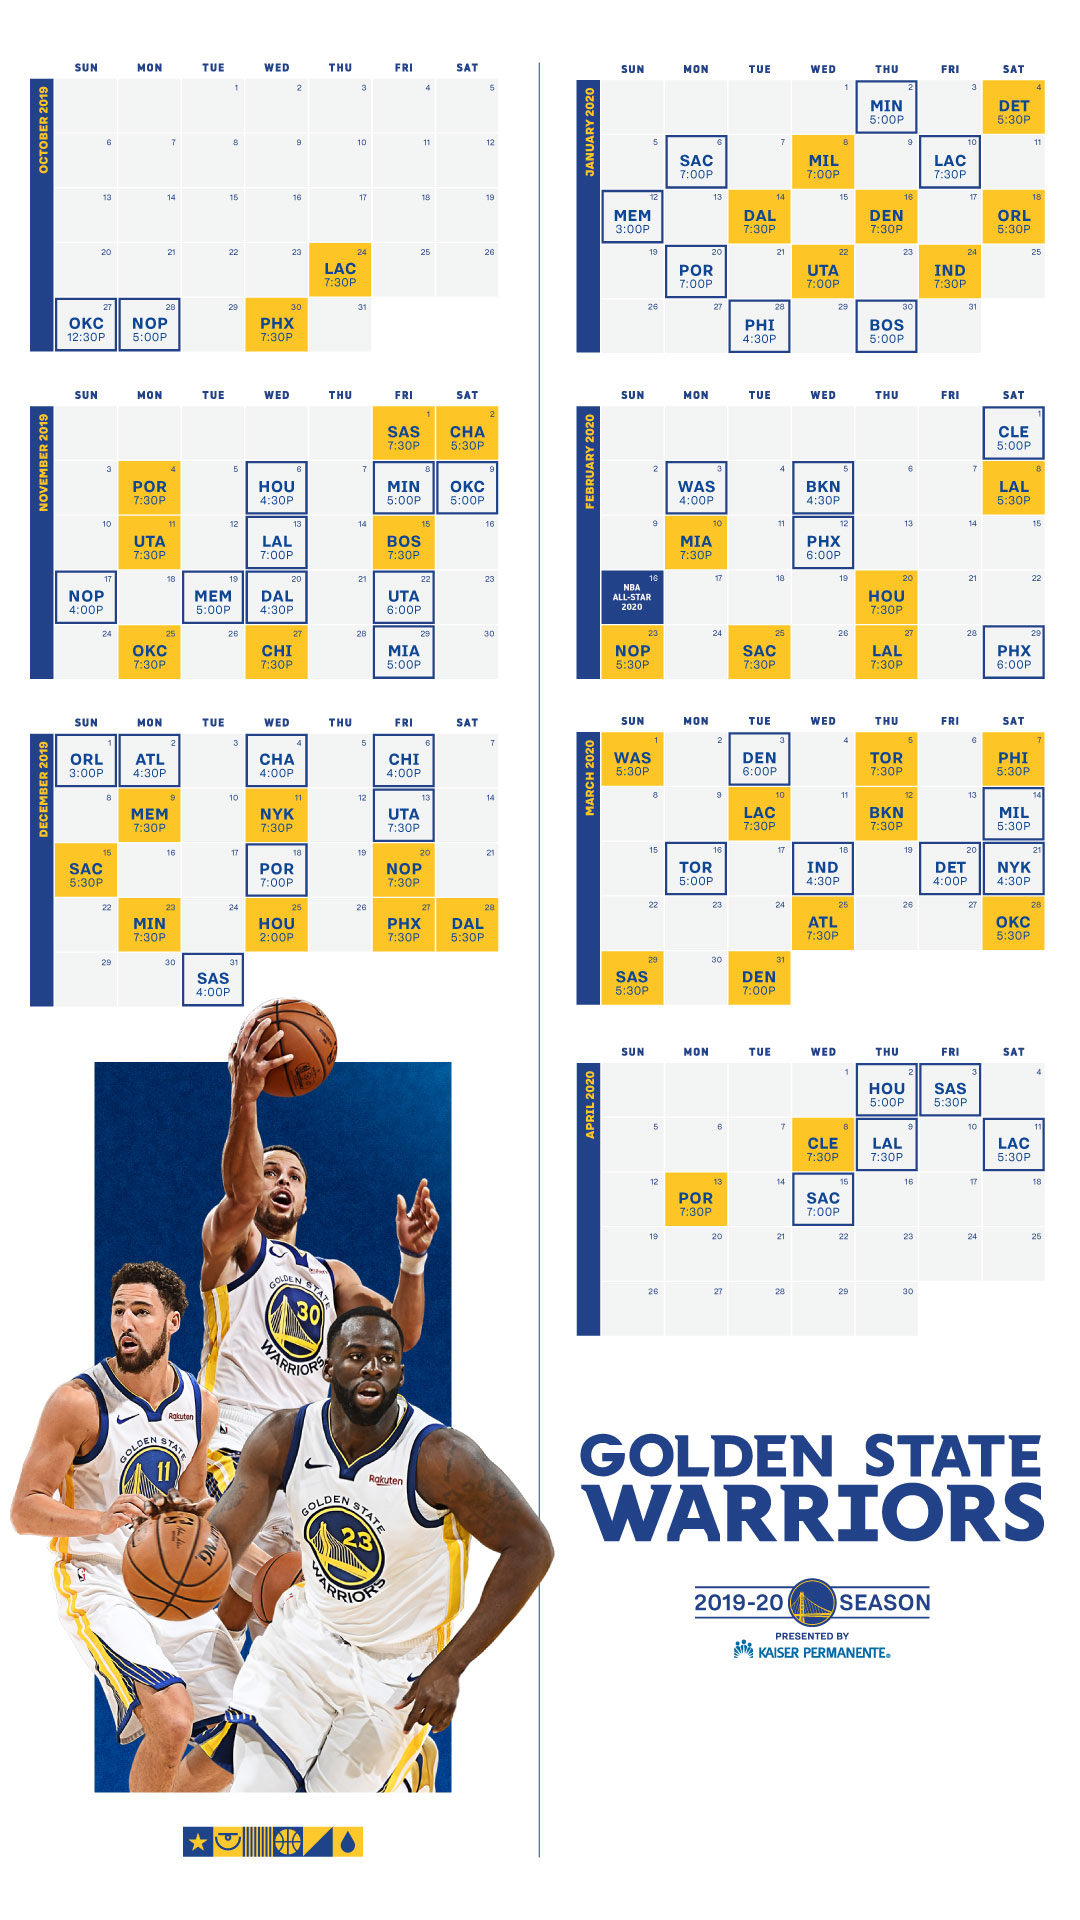 photo relating to Warriors Schedule Printable referred to as 2019-20 Golden Region Warriors Agenda, GSW Roster NBA Time